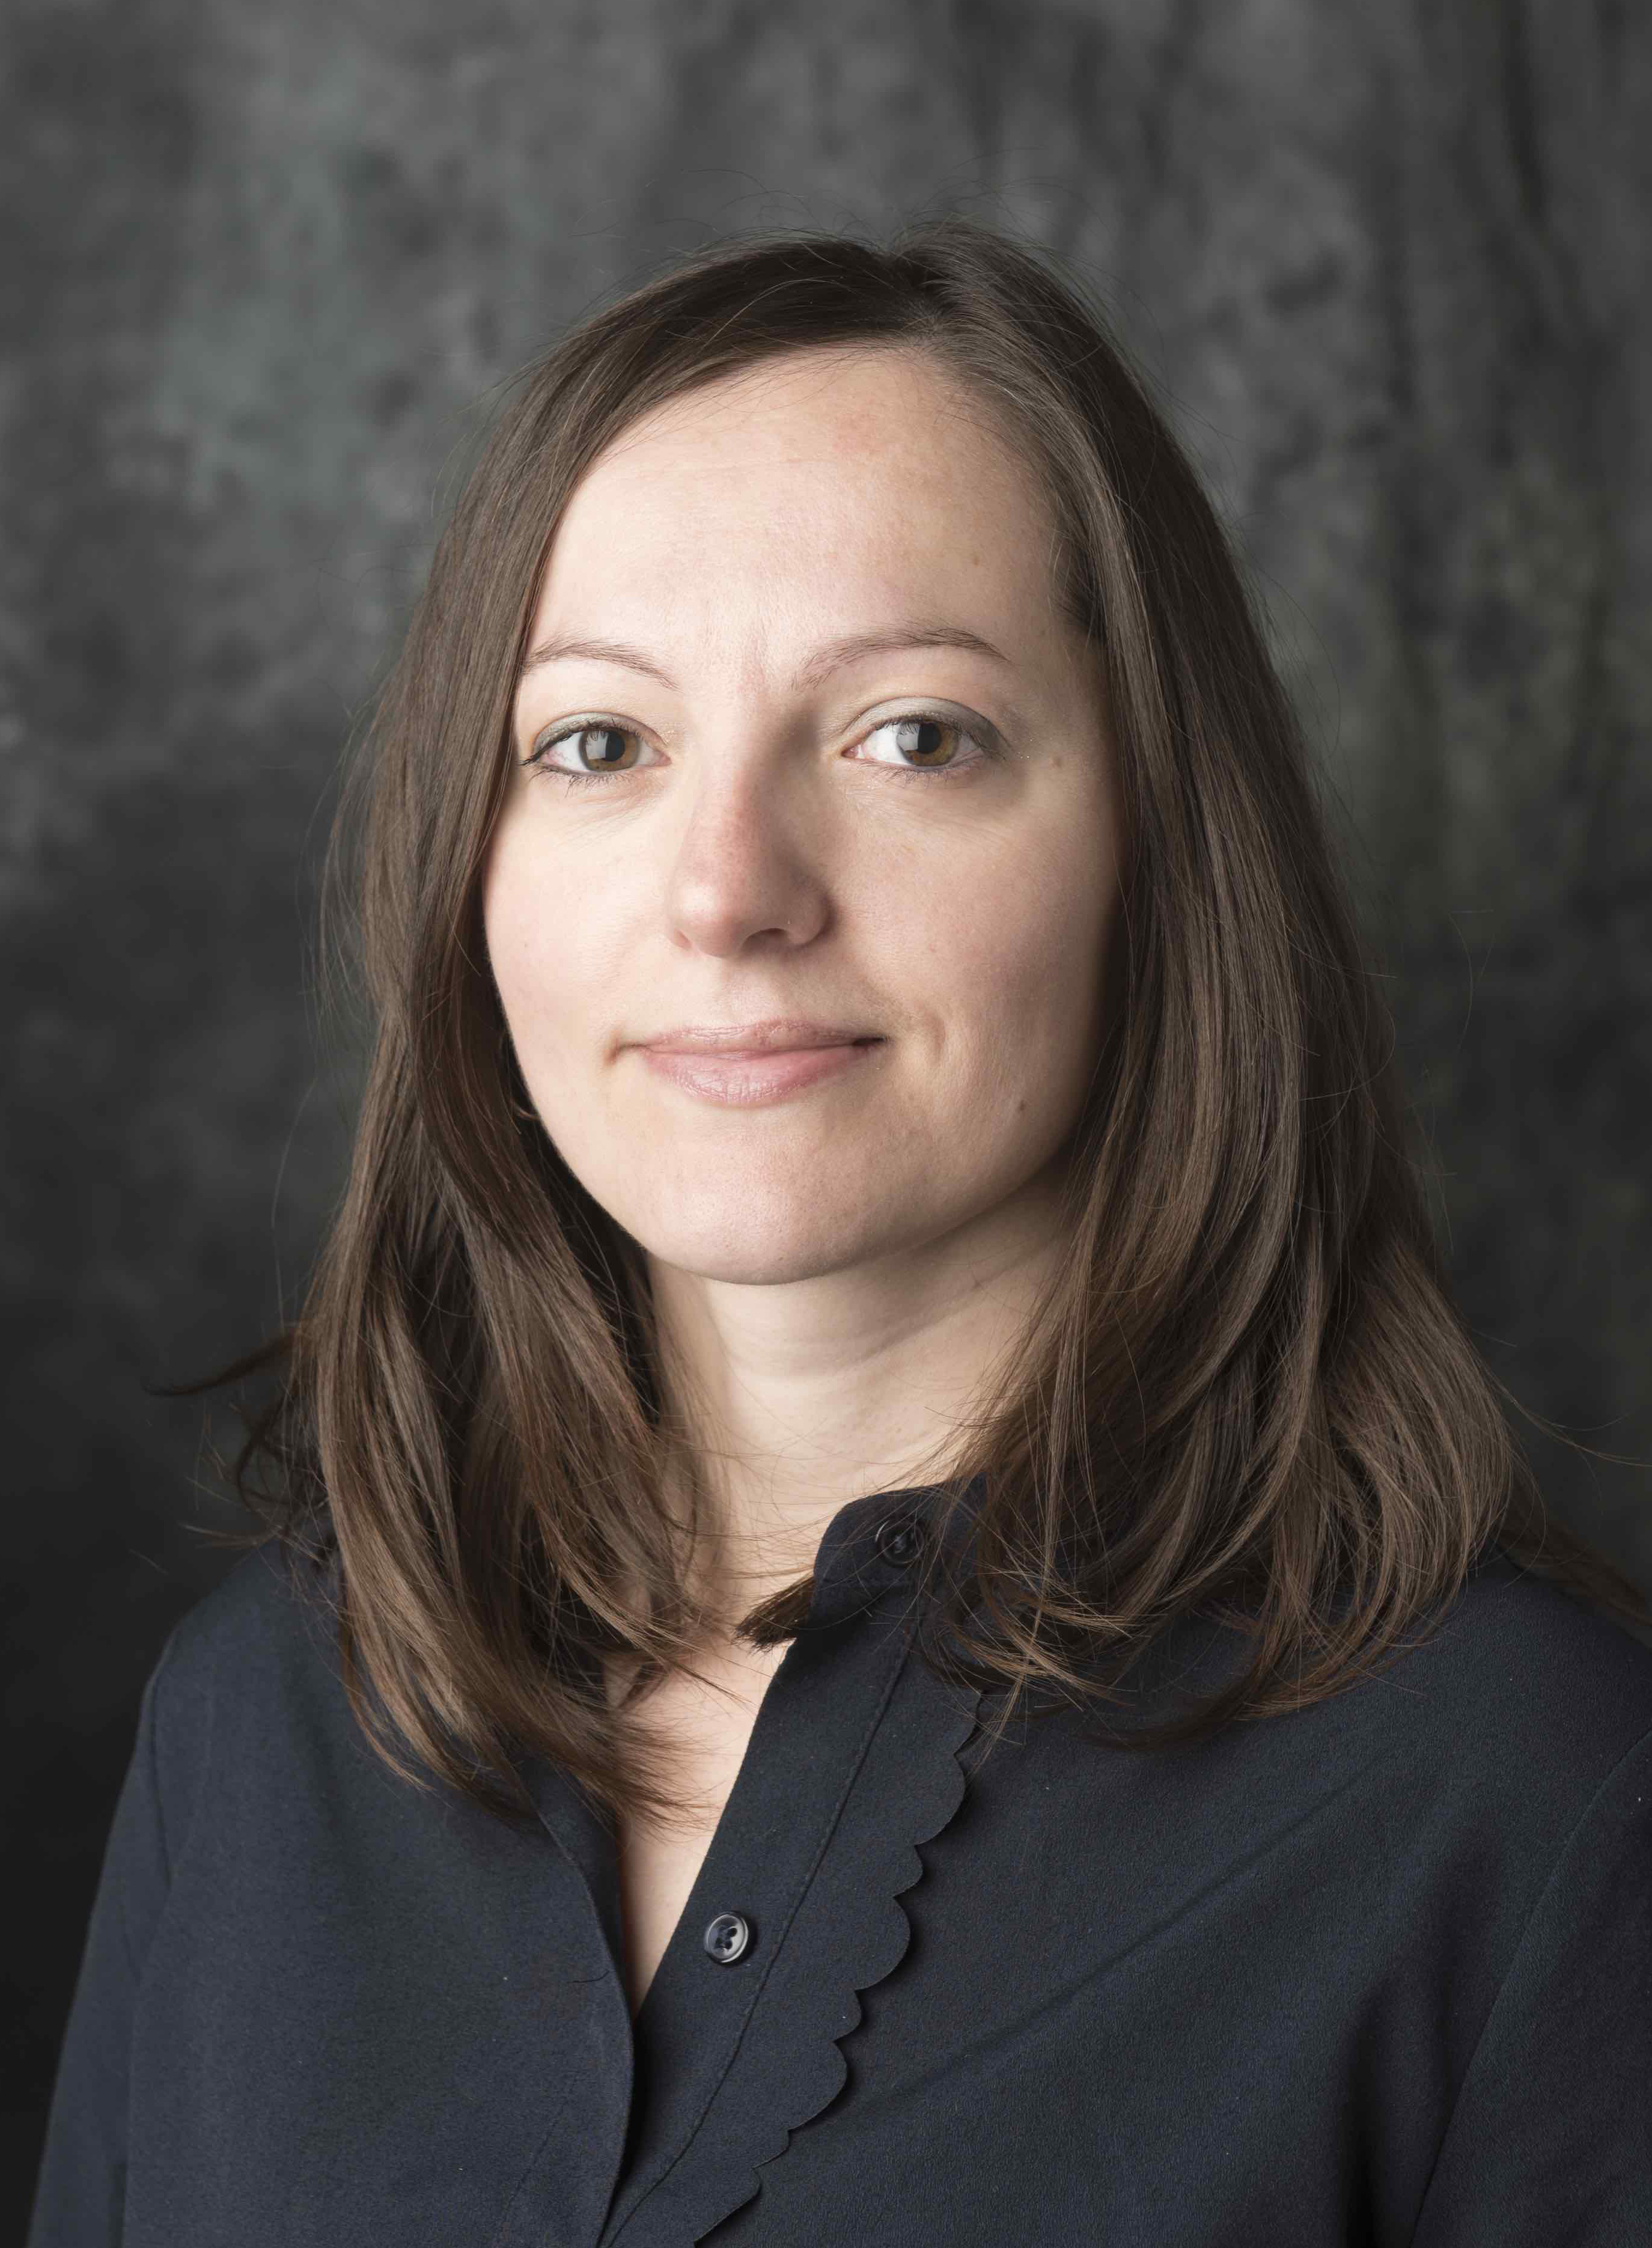 Dr. Jovana Kovacevic, Assistant Professor at OSU, Department of Food Science and Technology